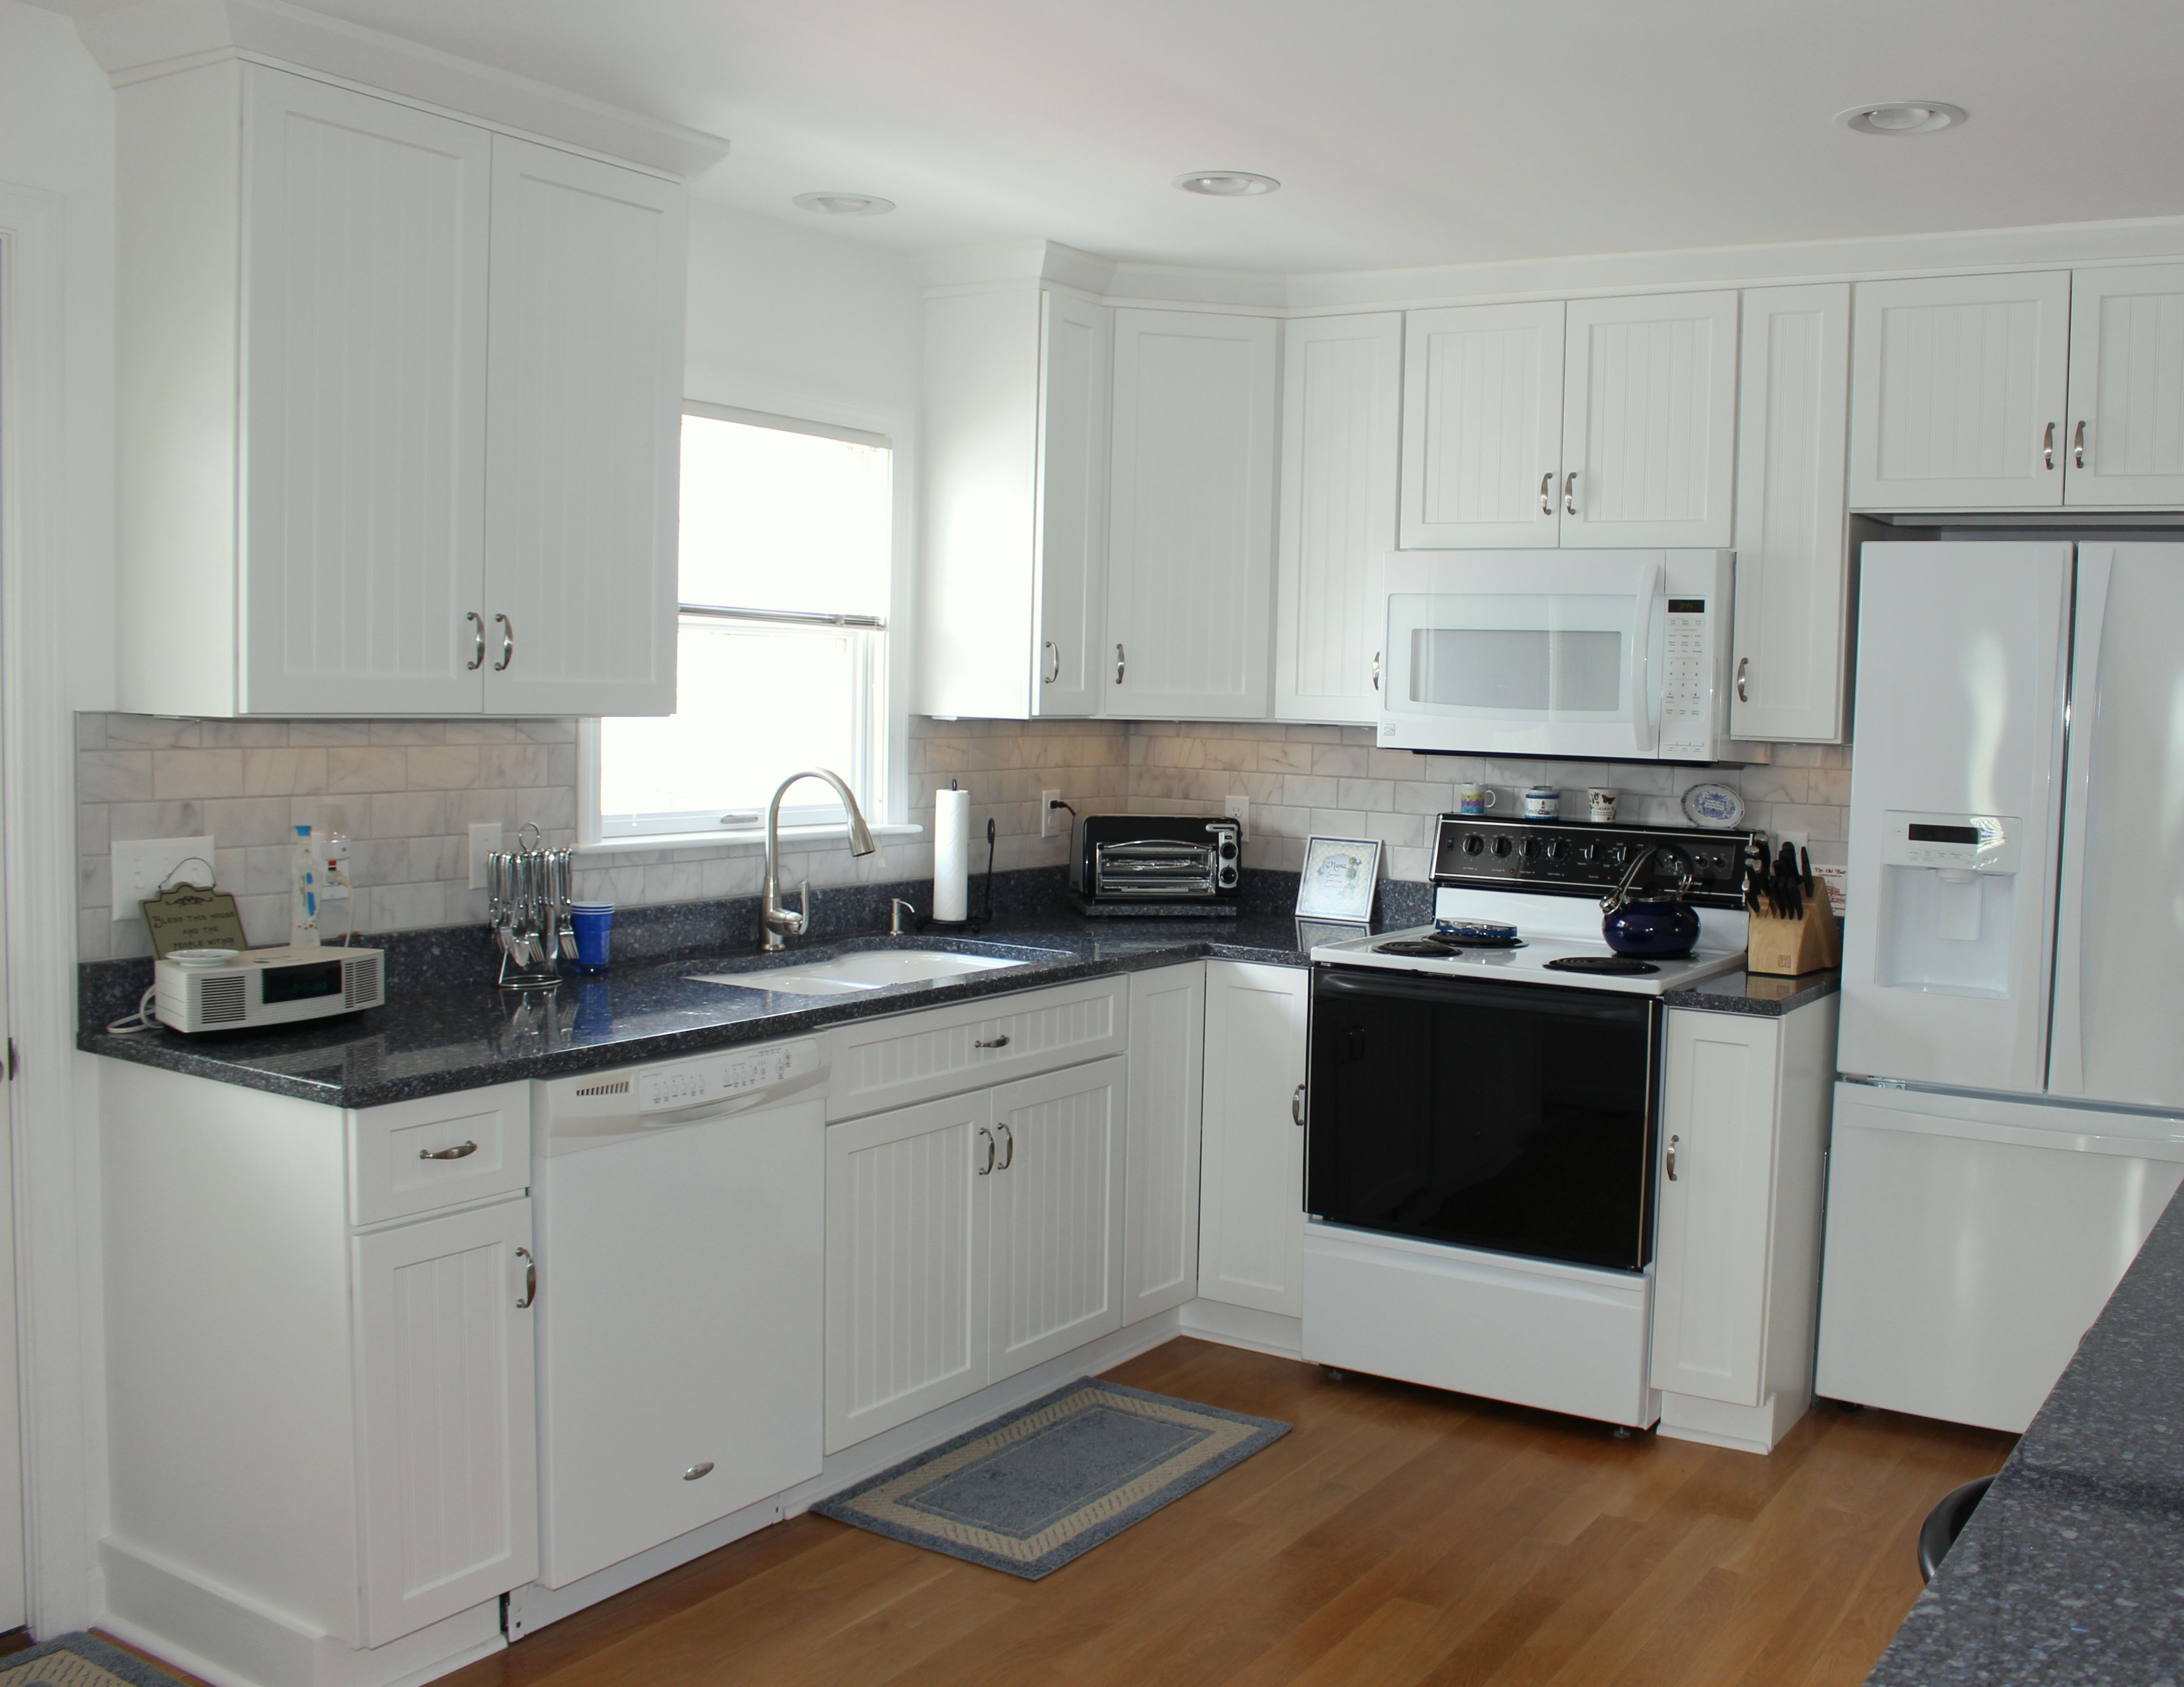 The Color Palette Of The Beach Sand And Ocean Waters Are Carried Inside To The Kitchen With The White Kitchen Renovation Bead Board Cabinets Stone Countertops